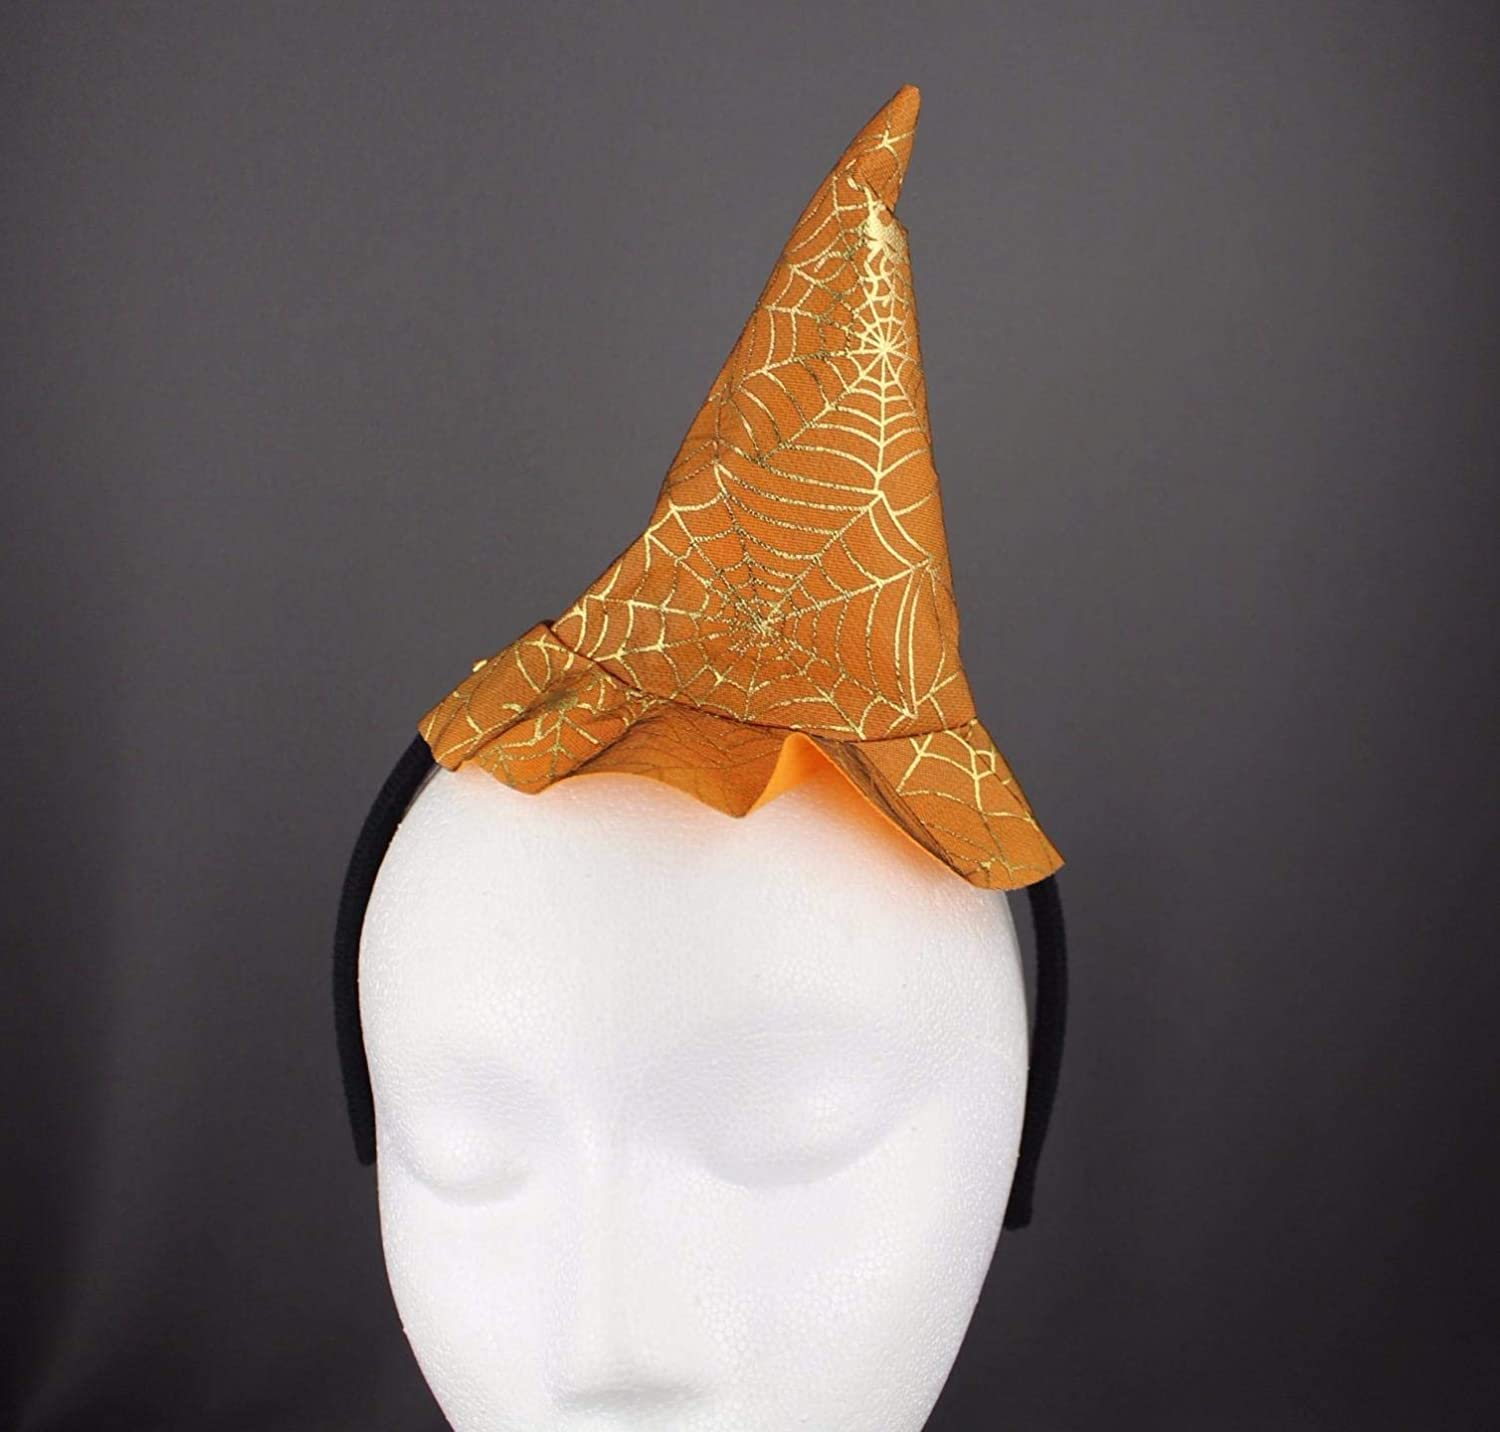 Amazon.com   Orange witch hat headband halloween thin skinny hair band  silver sparkle   Beauty a6a10f87092